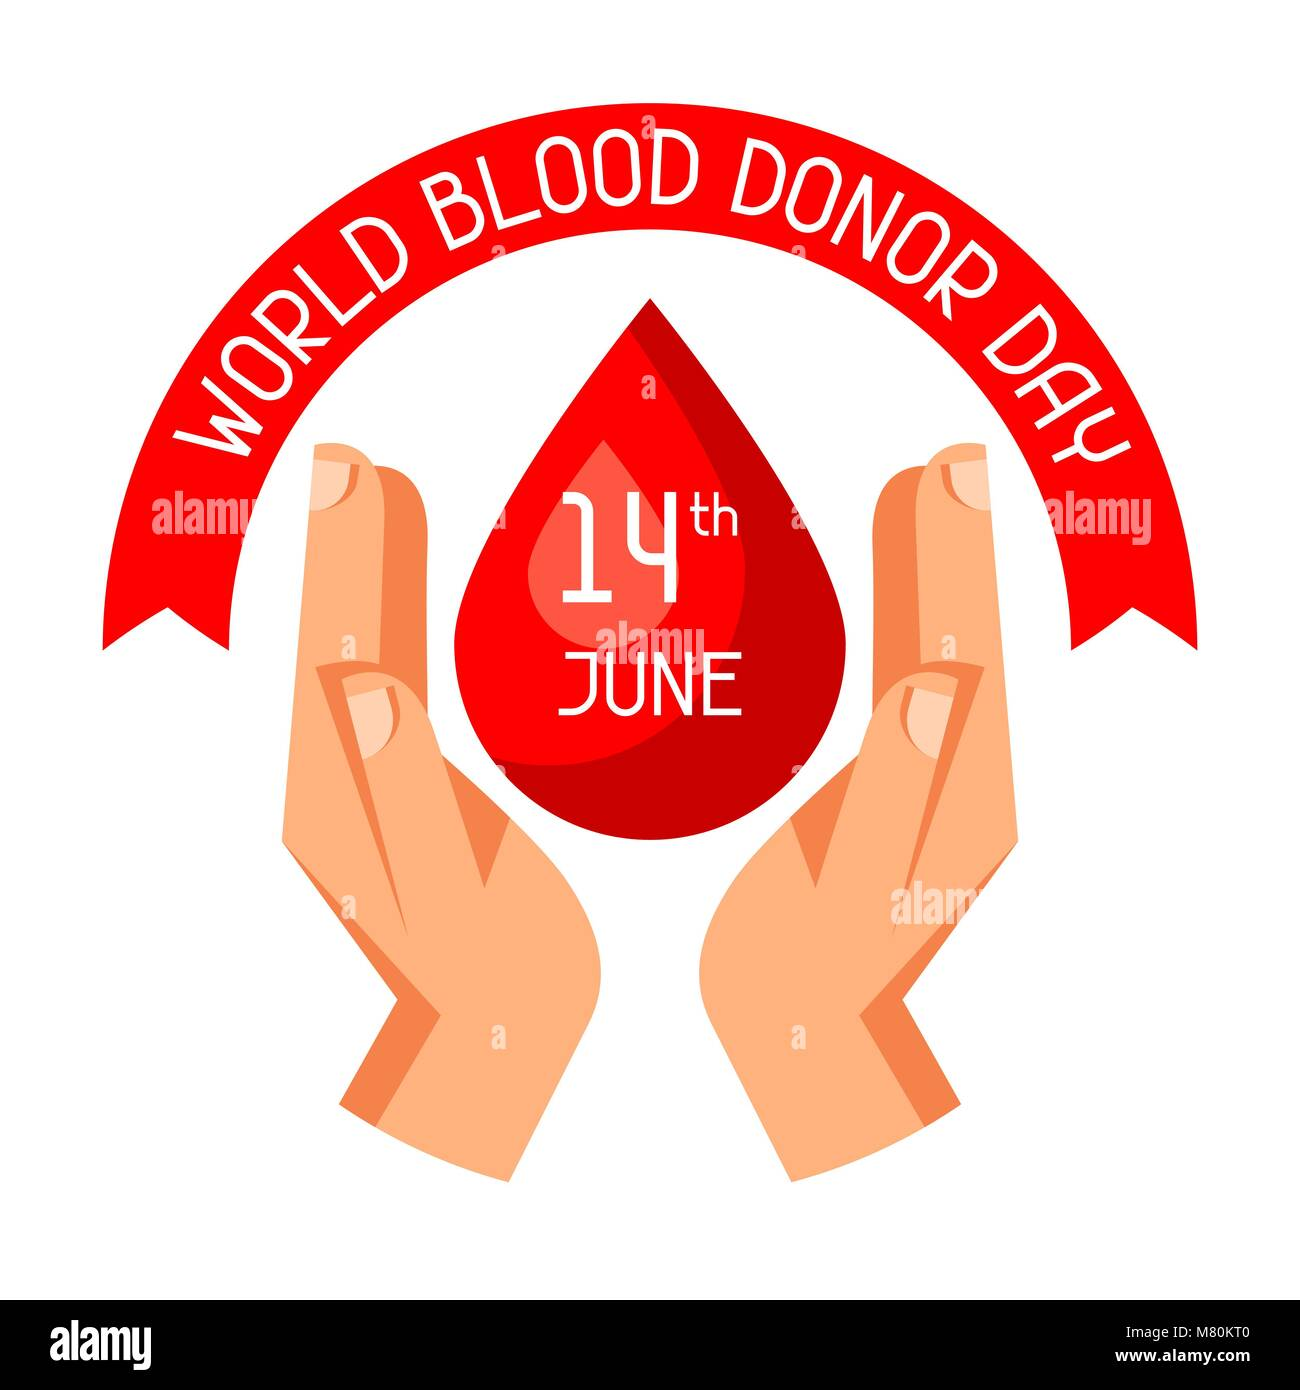 14t June world blood donor day. Medical and healthcare concept - Stock Image